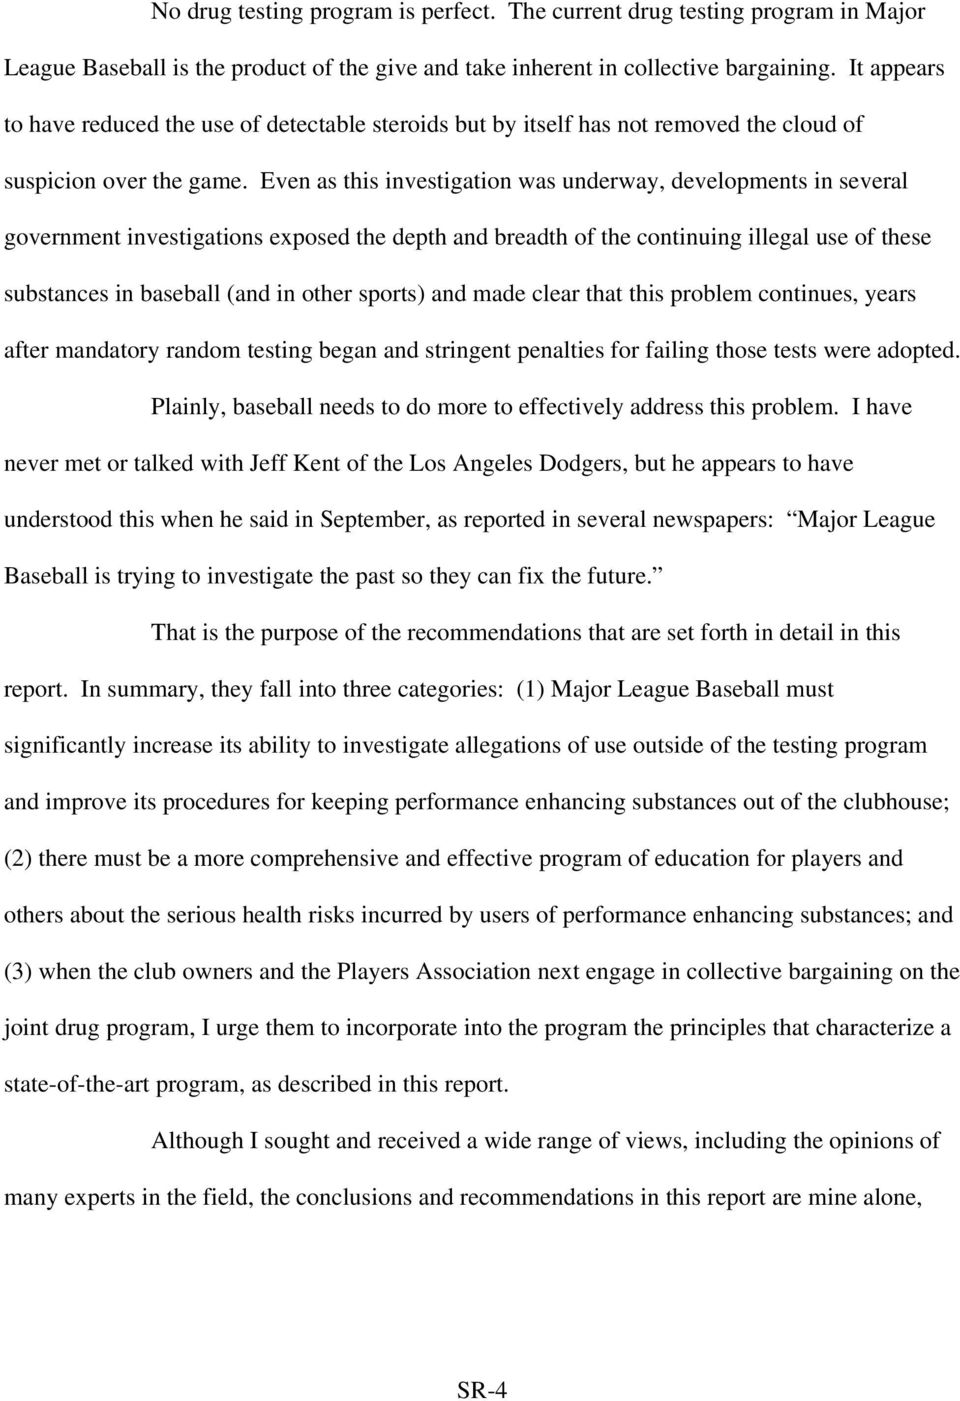 Even as this investigation was underway, developments in several government investigations exposed the depth and breadth of the continuing illegal use of these substances in baseball (and in other